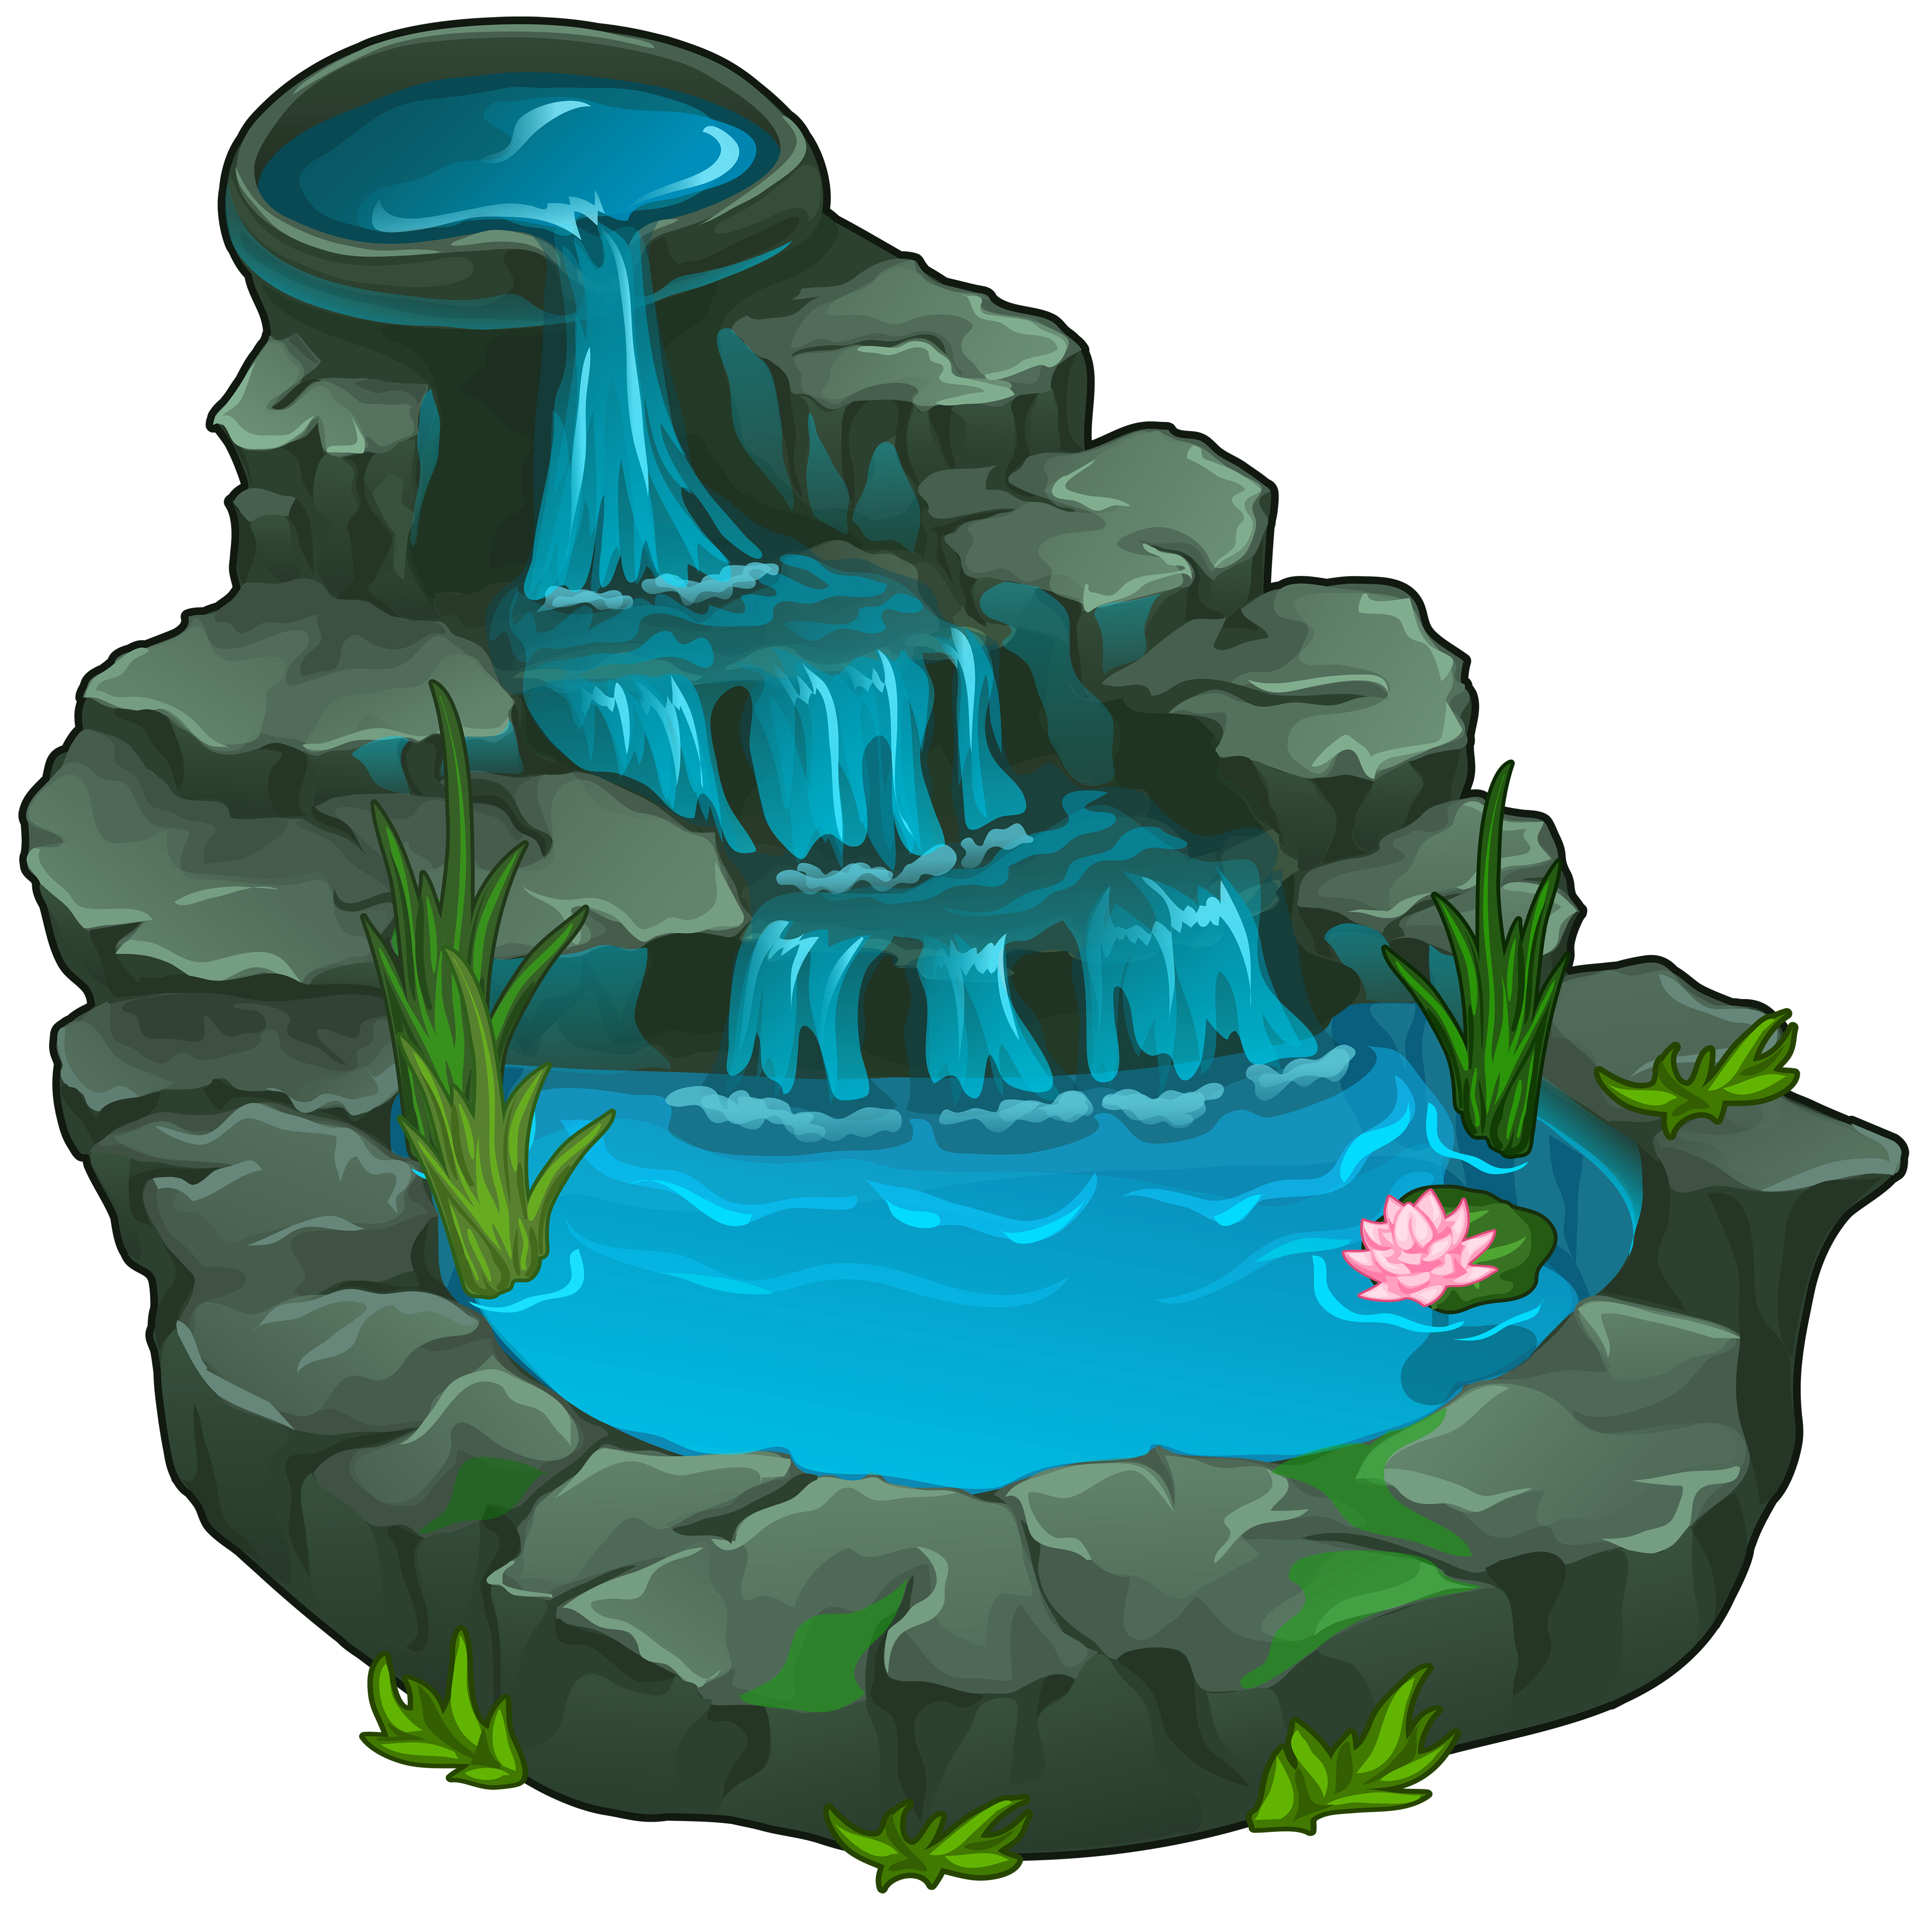 Waterfall png pinterest. Lake clipart fairytale landscape